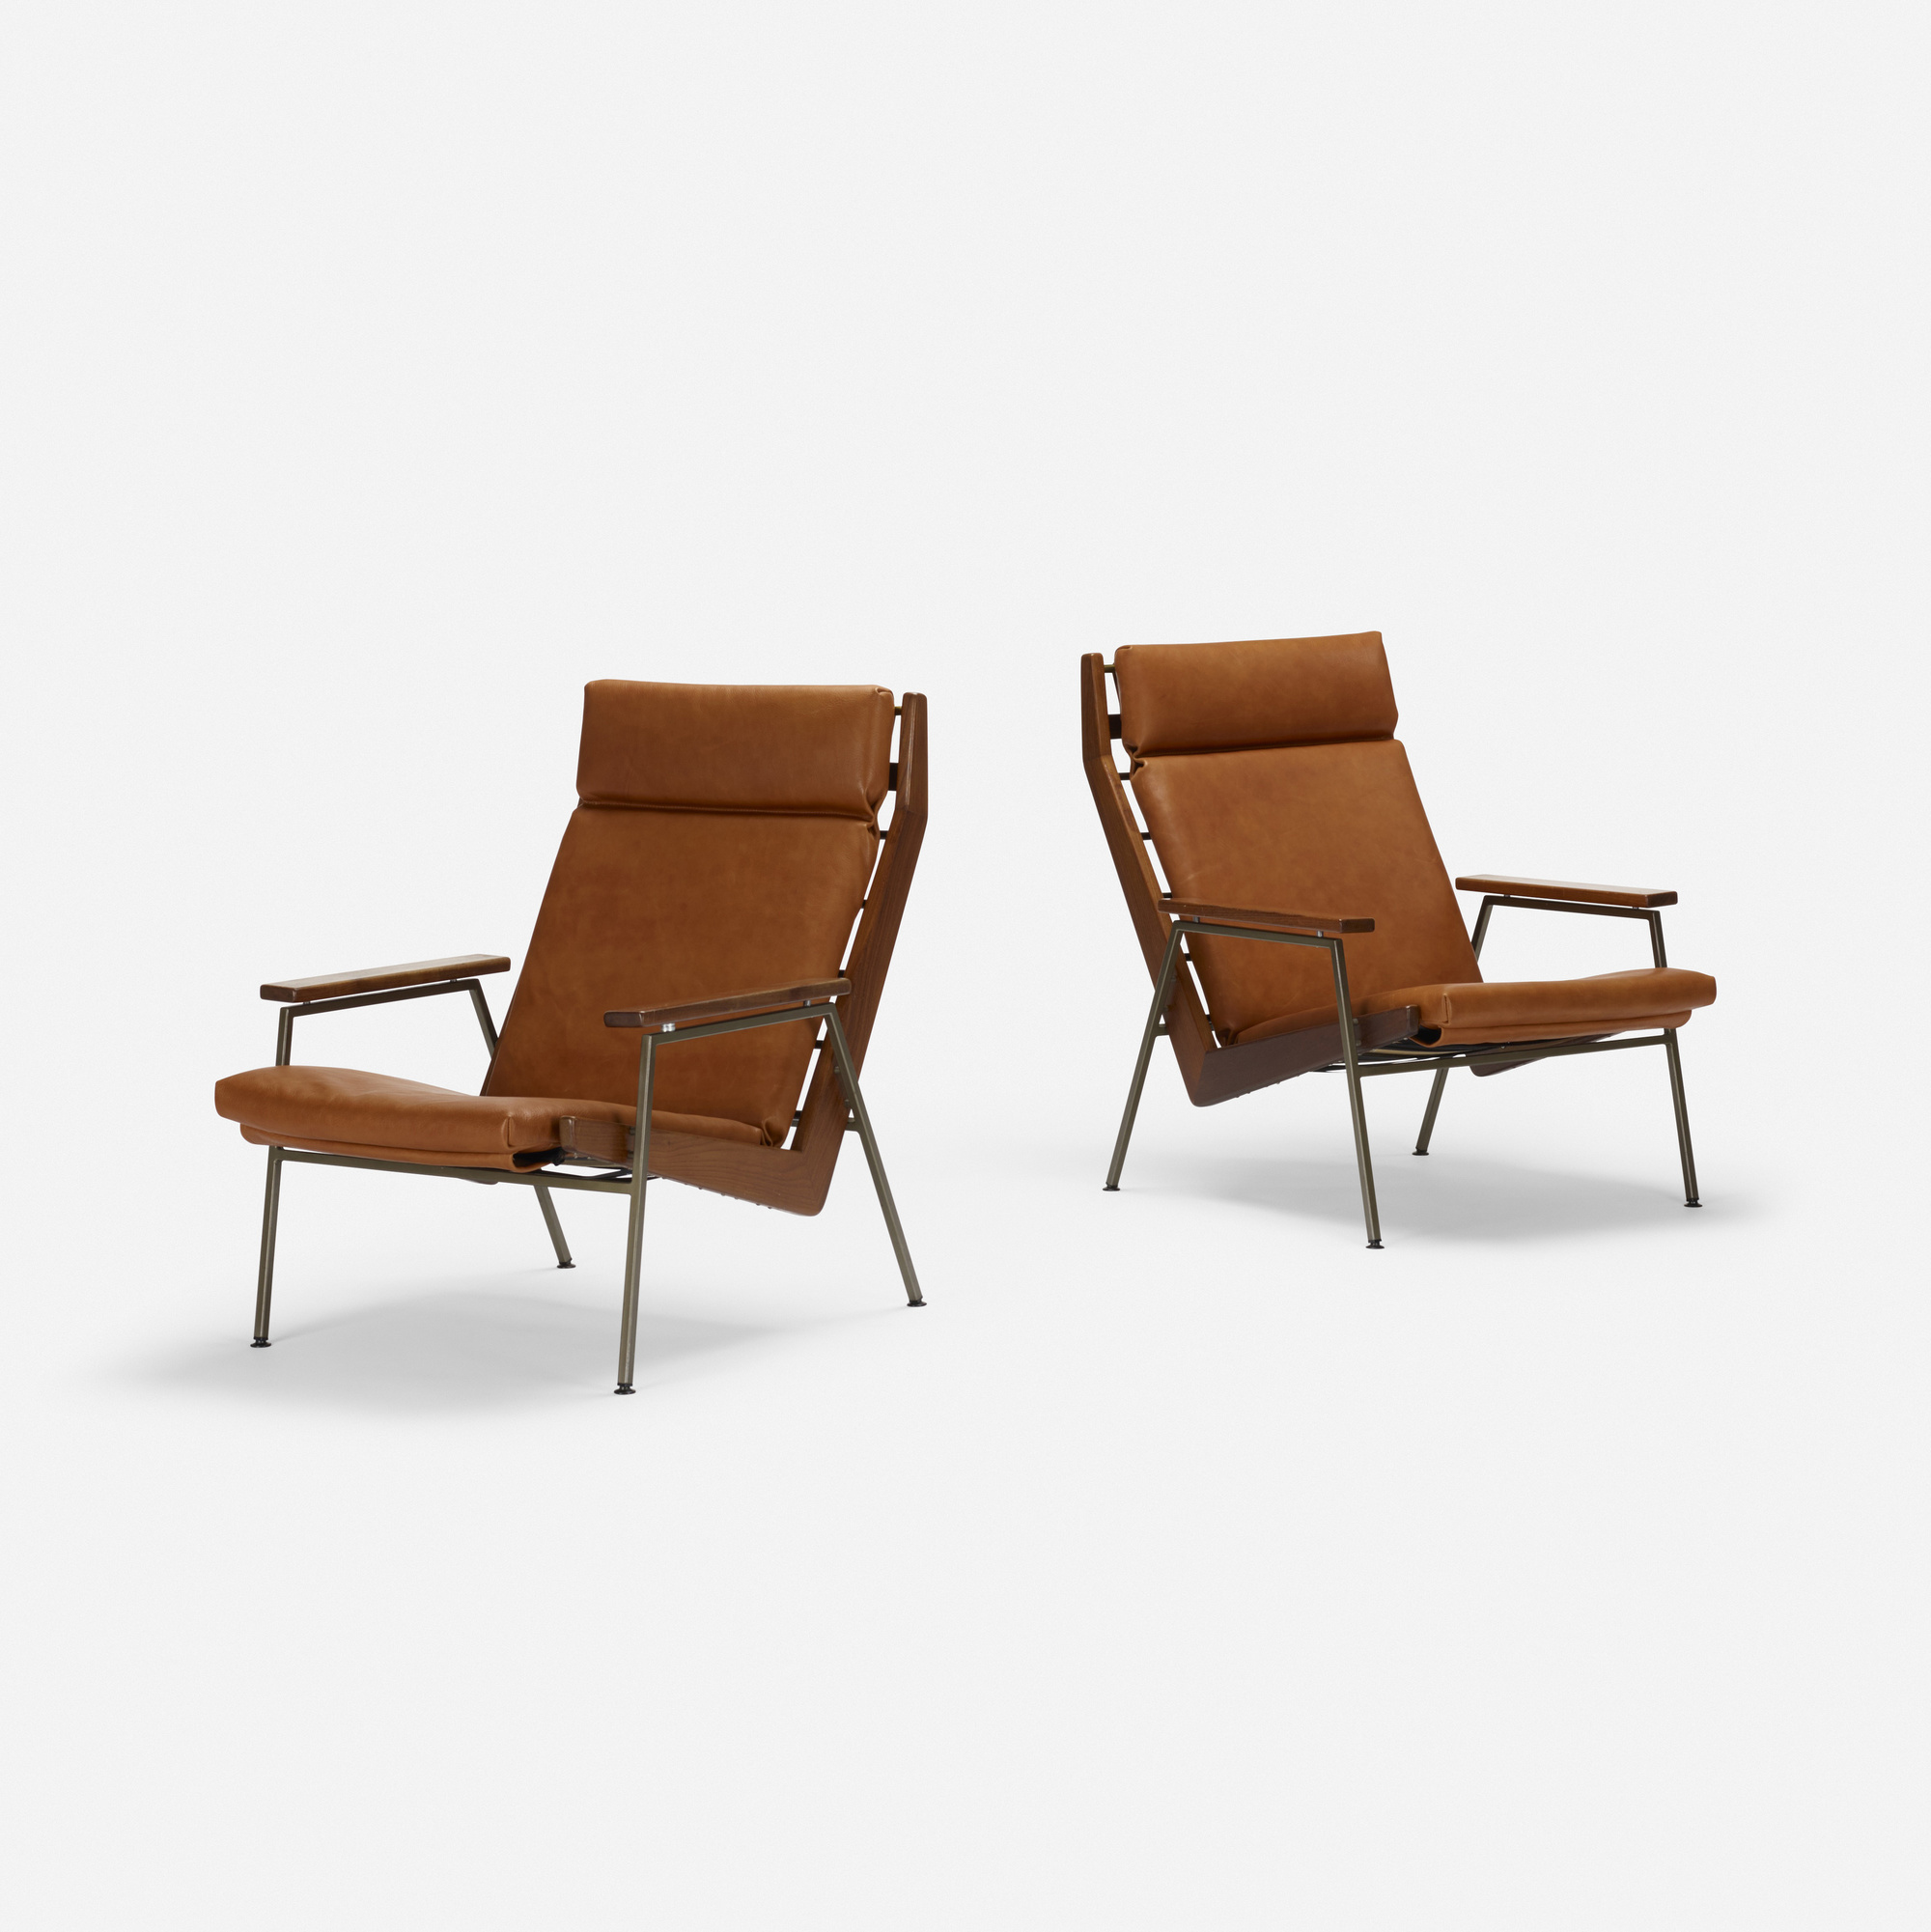 Amazing 315 Rob Parry Lotus Lounge Chairs Pair Art Design 19 Pdpeps Interior Chair Design Pdpepsorg